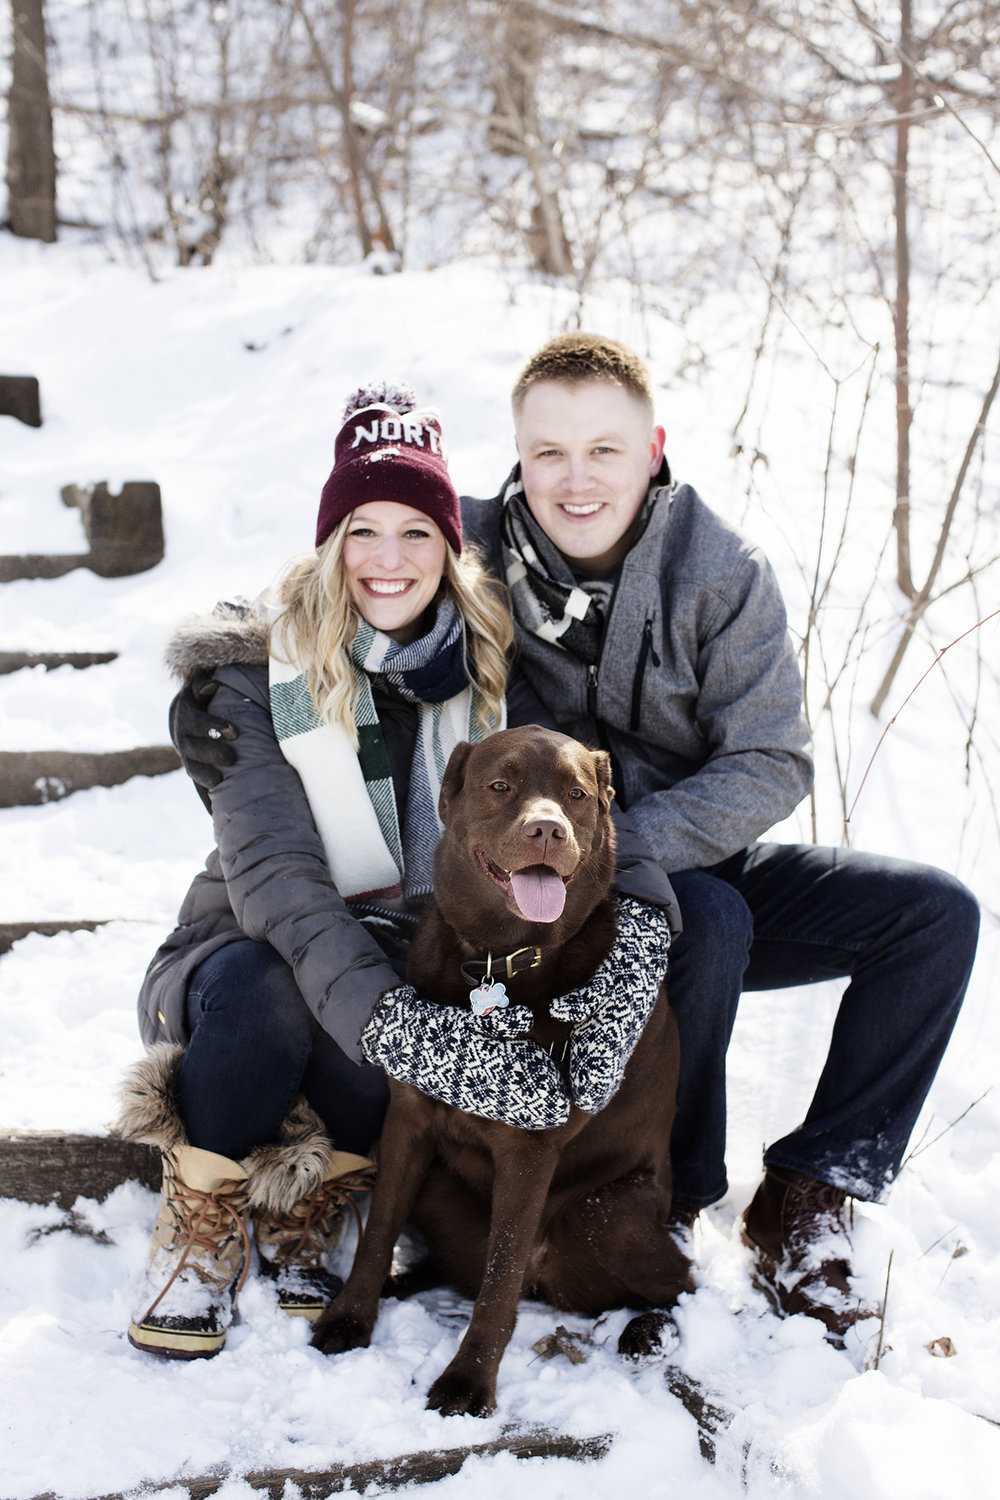 Winter Engagement Photos North Loop, Minneapolis | Photography by Photogen Inc. | Eliesa Johnson | Based in Minnesota